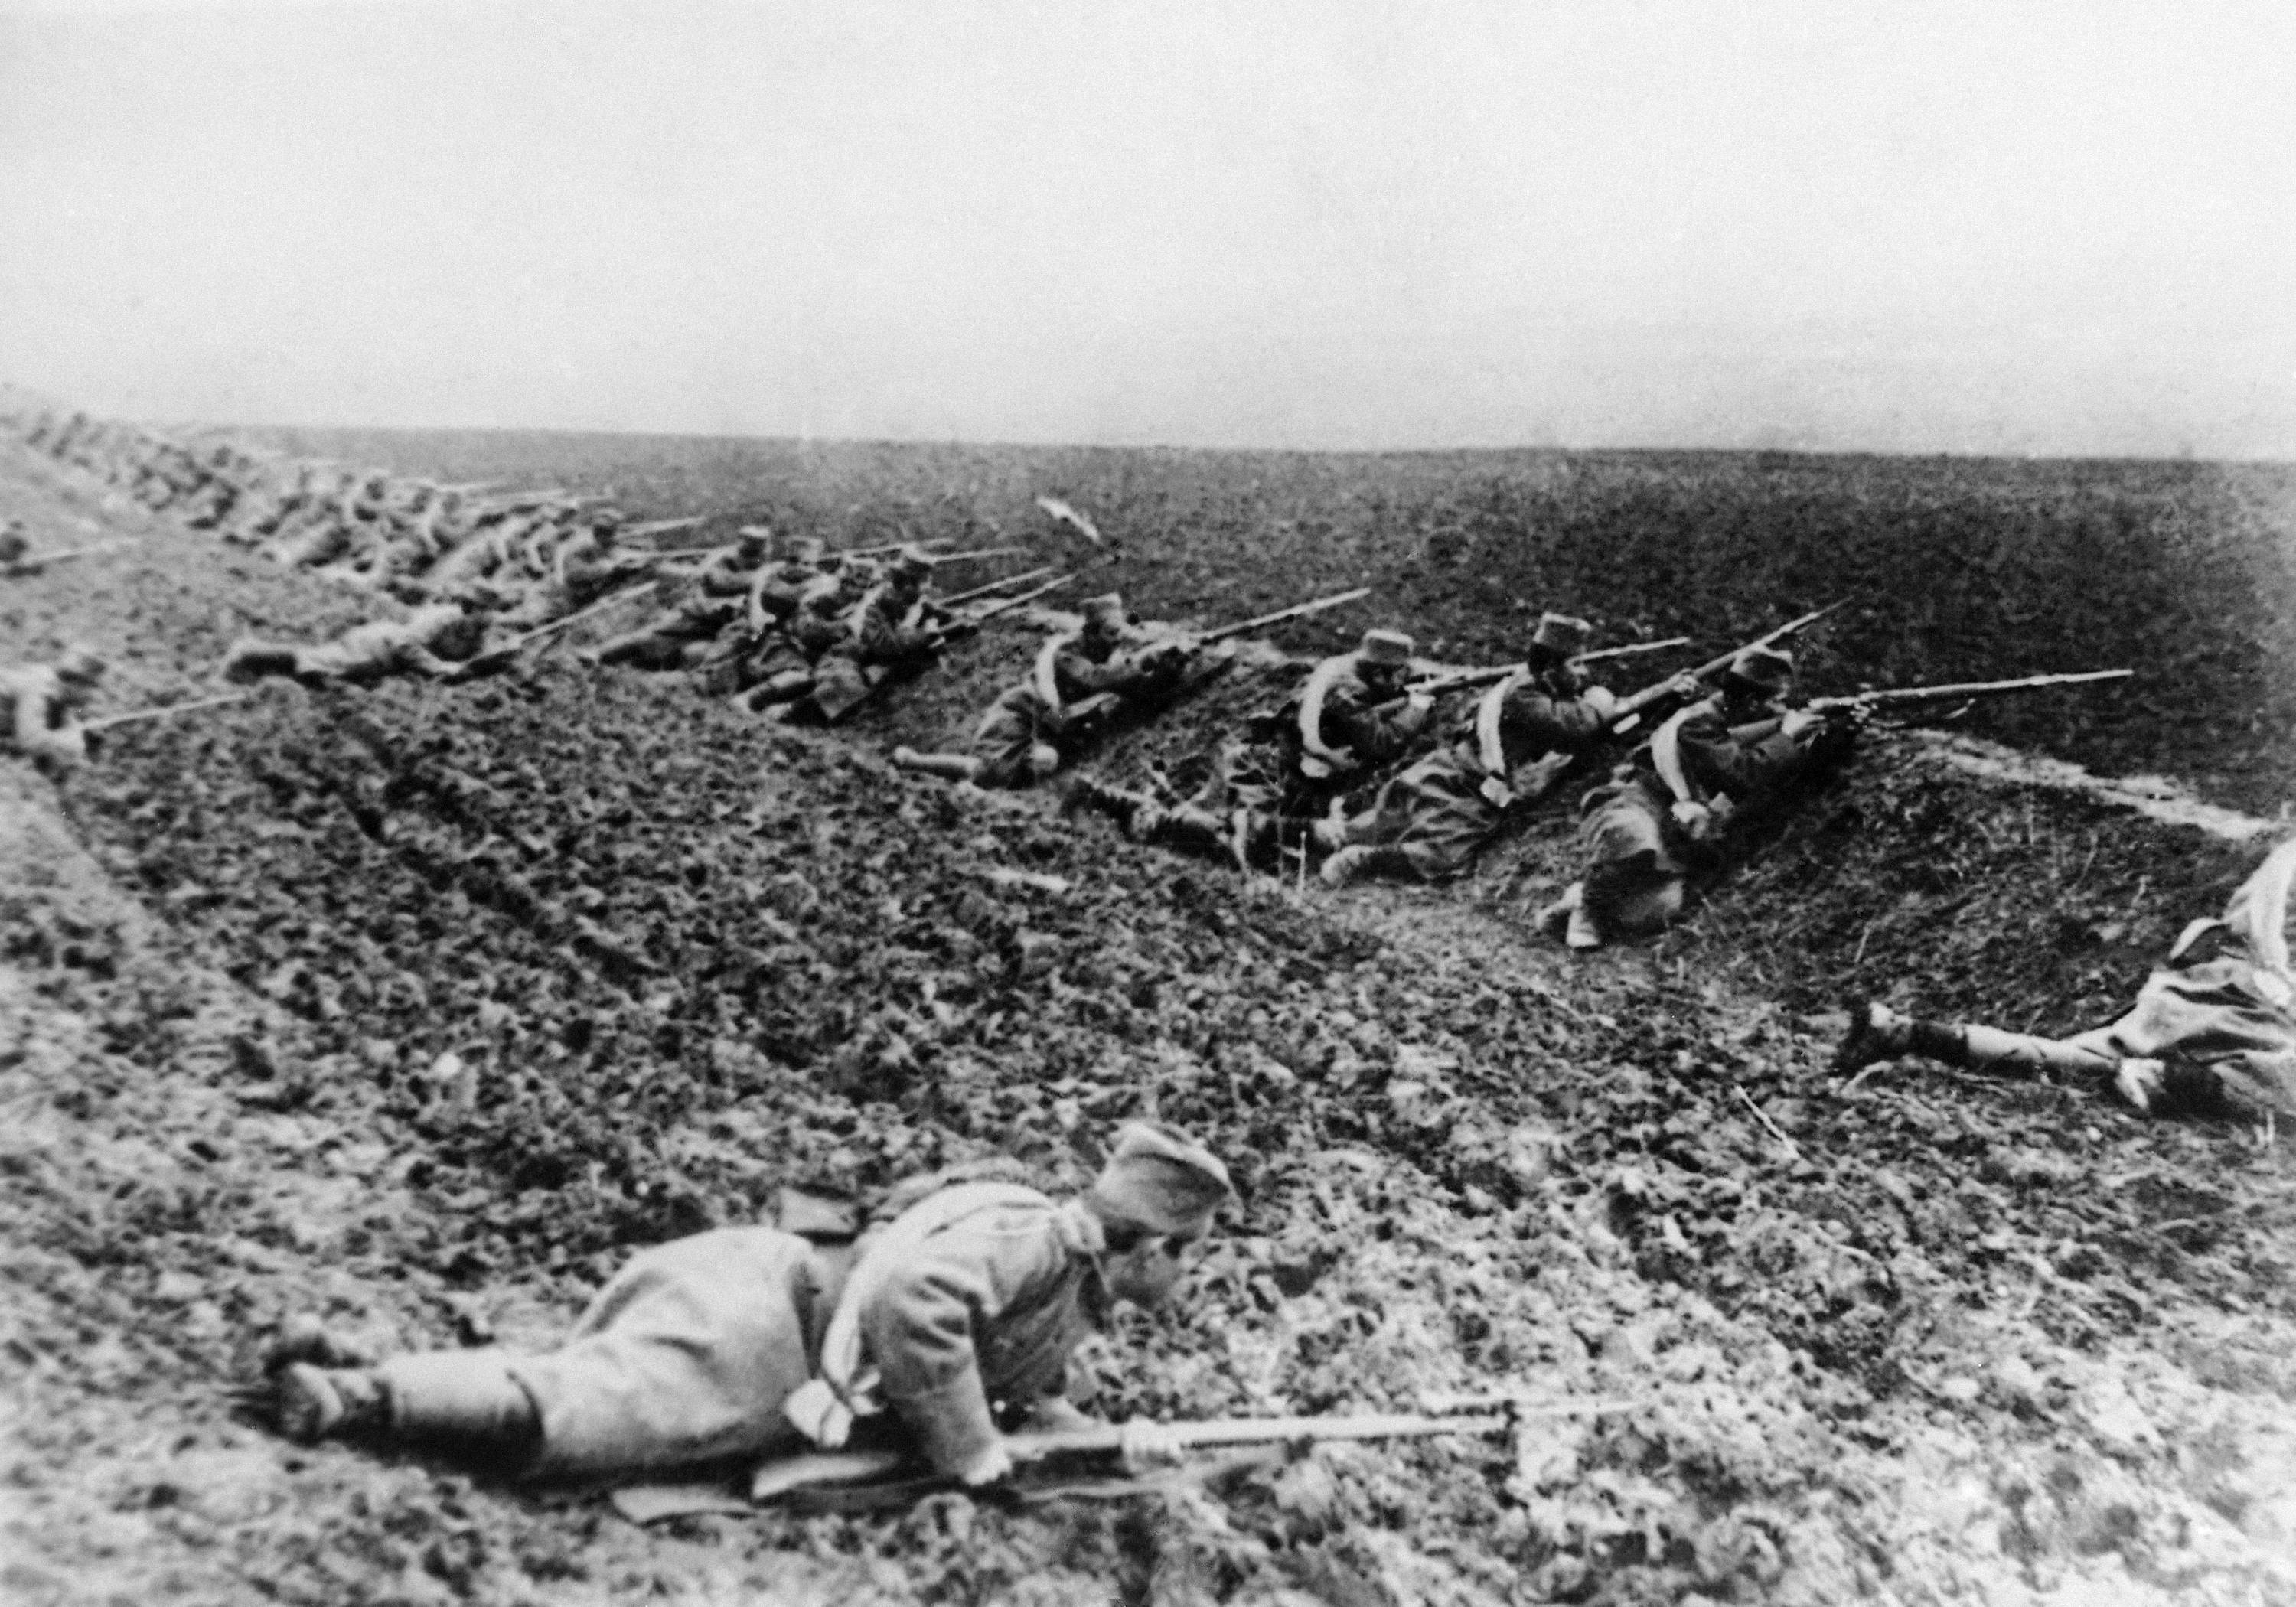 SEVEN OF 100: In this undated file photo, Serbian soldiers take position on the battle line. Some of the first battles of World War I were fought between Serbia and Austria-Hungary around the Cer Mountain region.